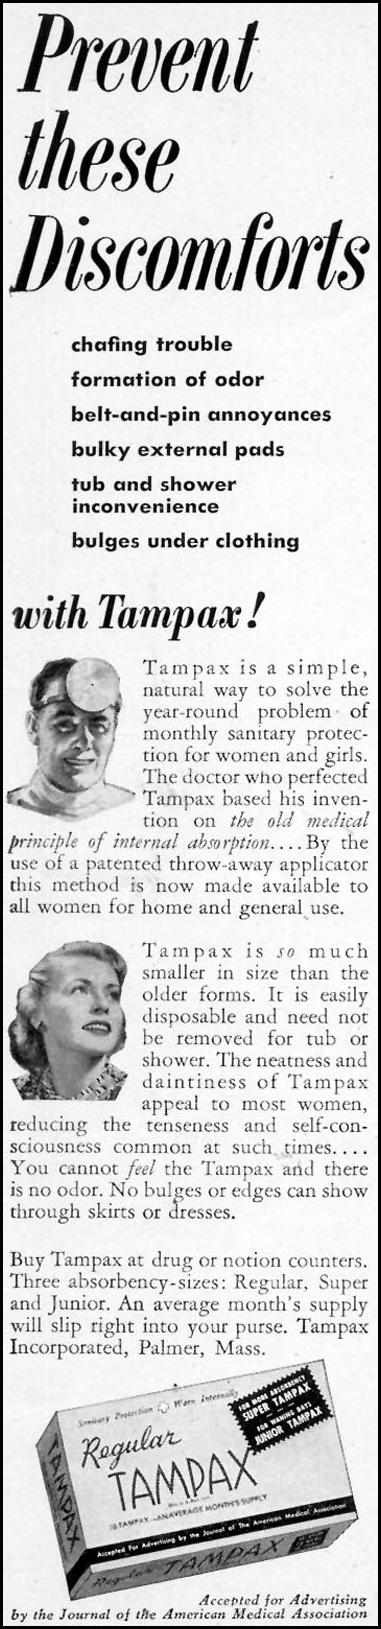 TAMPAX WOMAN'S DAY 05/01/1950 p. 22